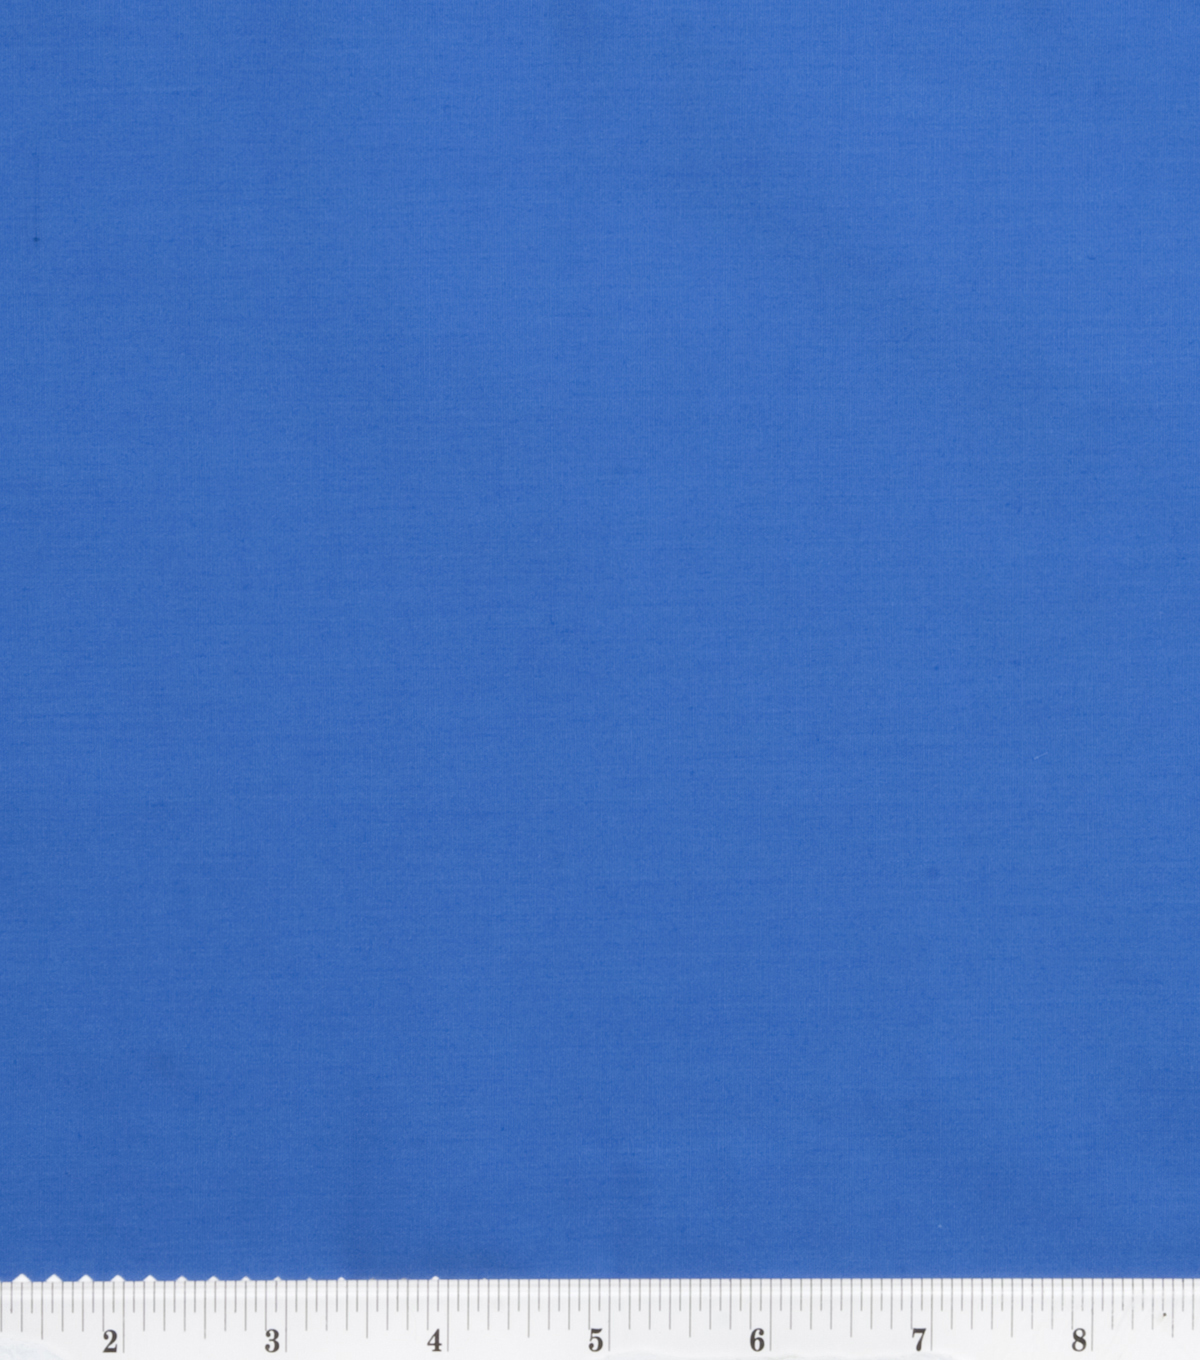 2 Yard Pre-Cut Symphony Broadcloth Fabric Remnant-Light Royal Blue